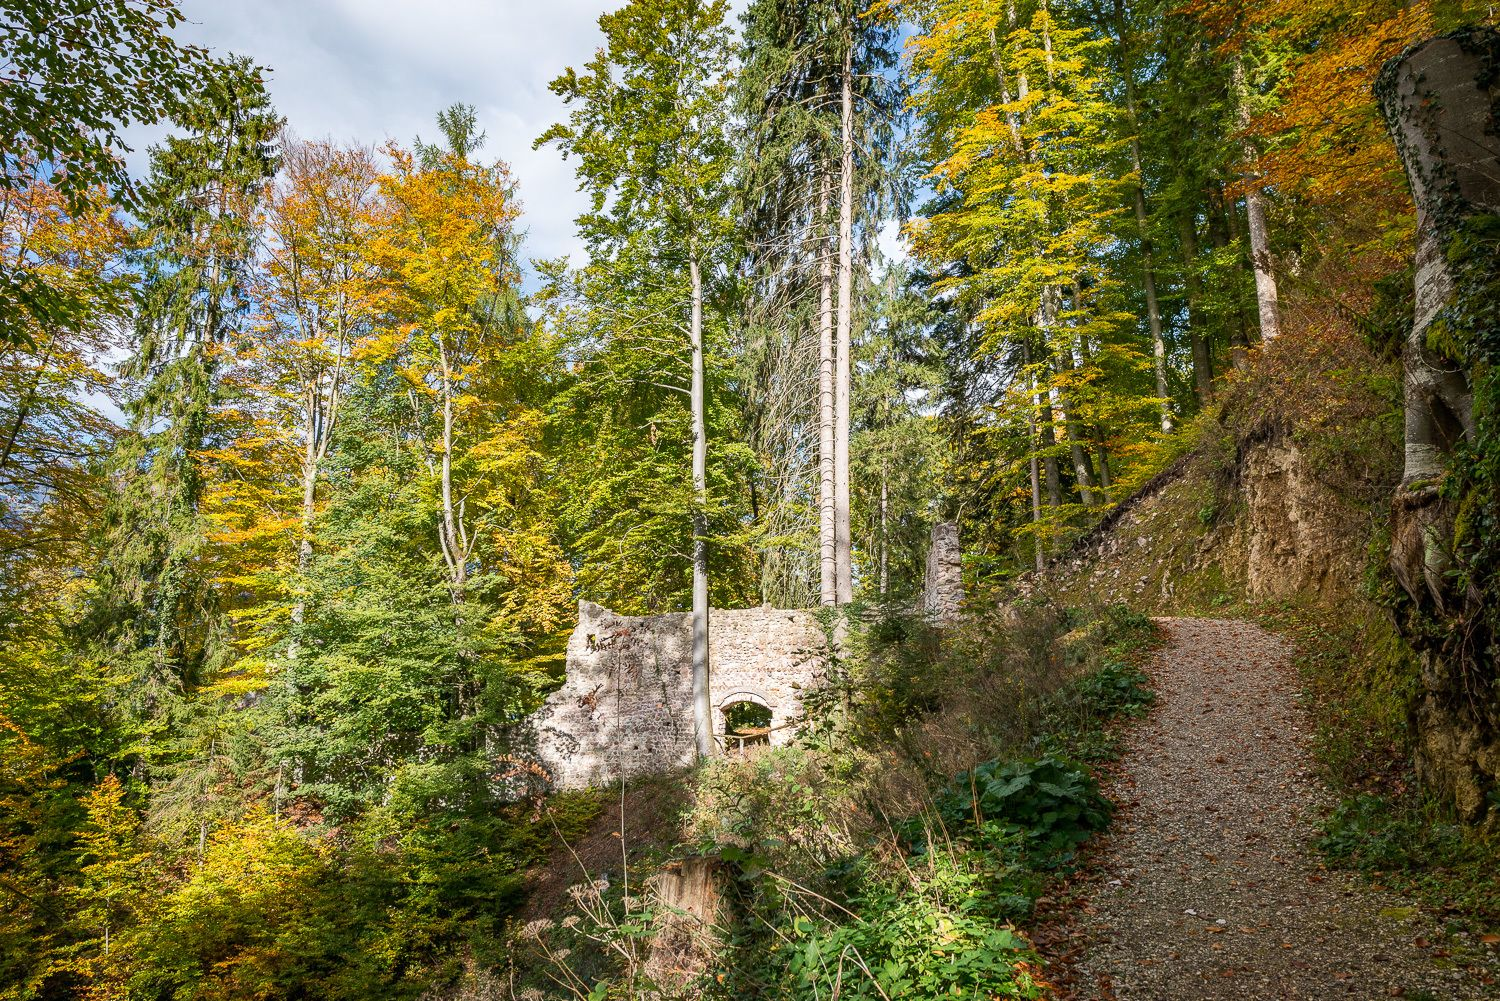 WEDNESDAY: Waterfall Buch, 200 year old spruce and ruin Rottenburg (Familyday)